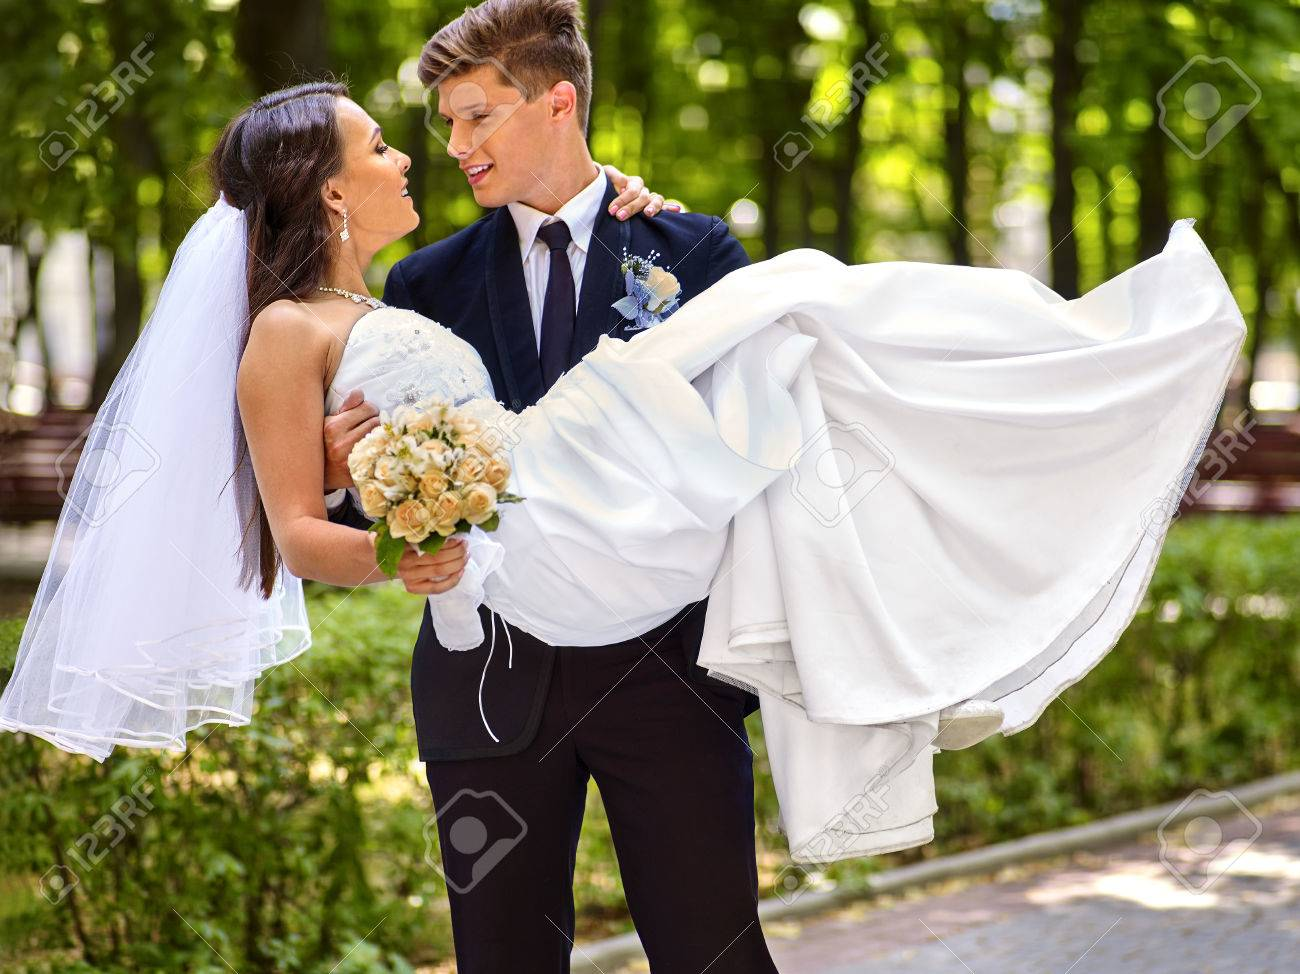 Bride and groom with flower summer outdoor. - 37457361